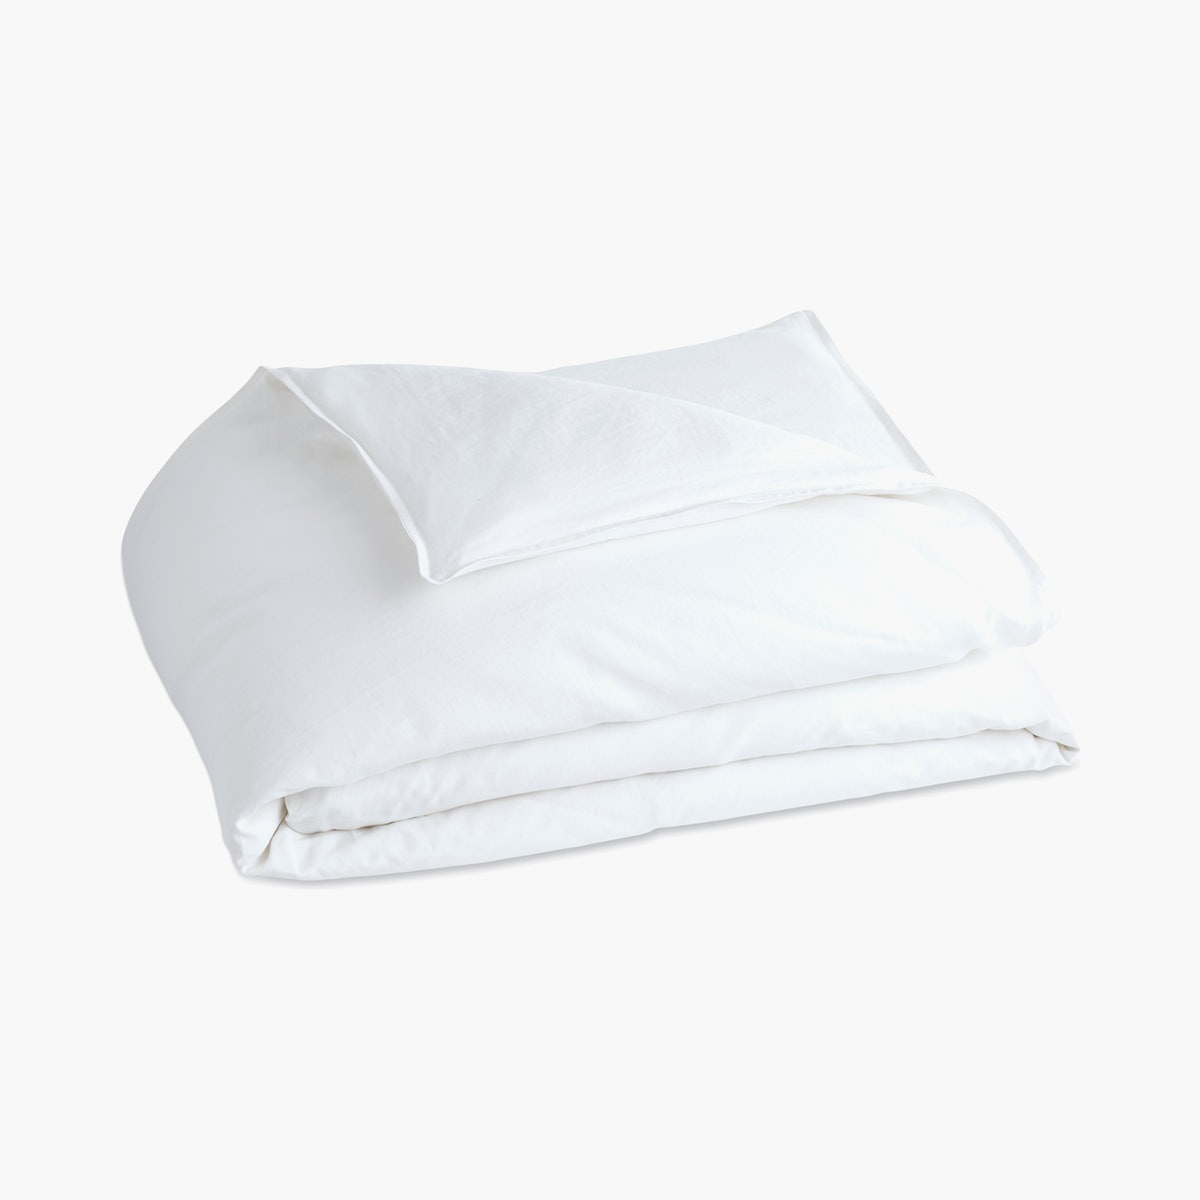 DWR Duvet Cover - Percale